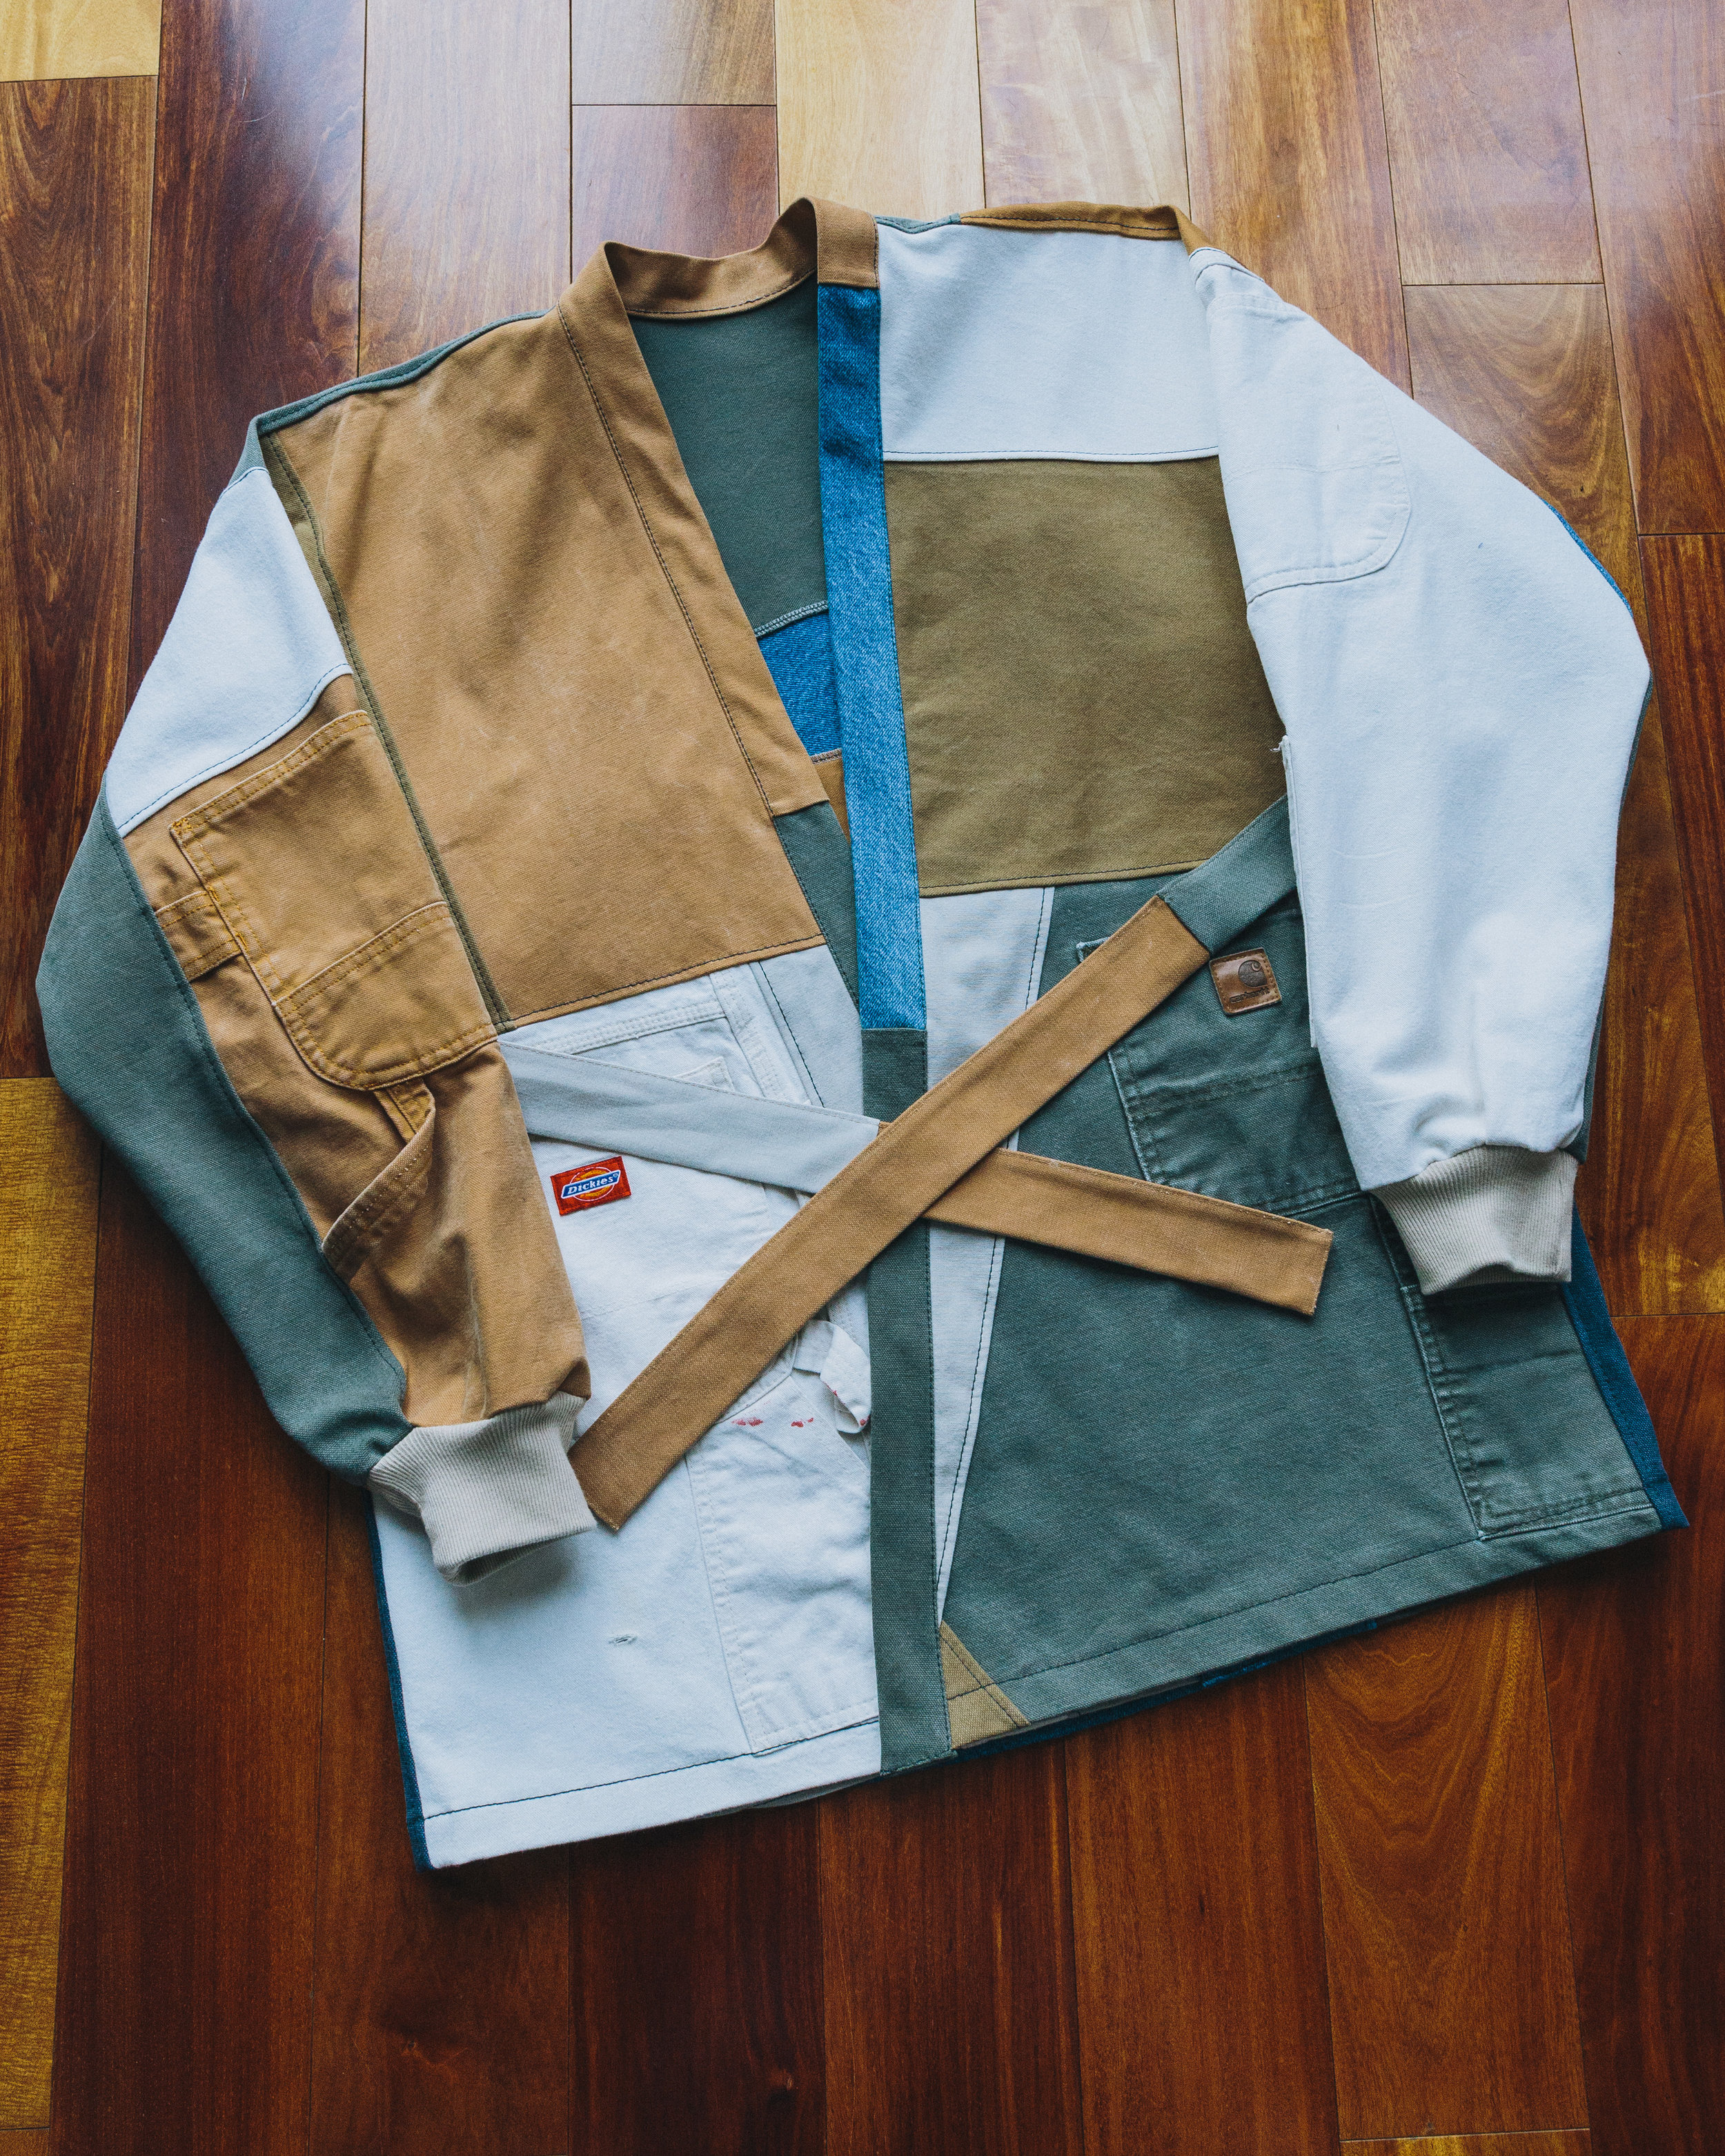 Patchwork Kimono - A combination of olive Carhartt pants, painter's dickie pants, normal blue denim, and other work pants along with a strap to tie it together.